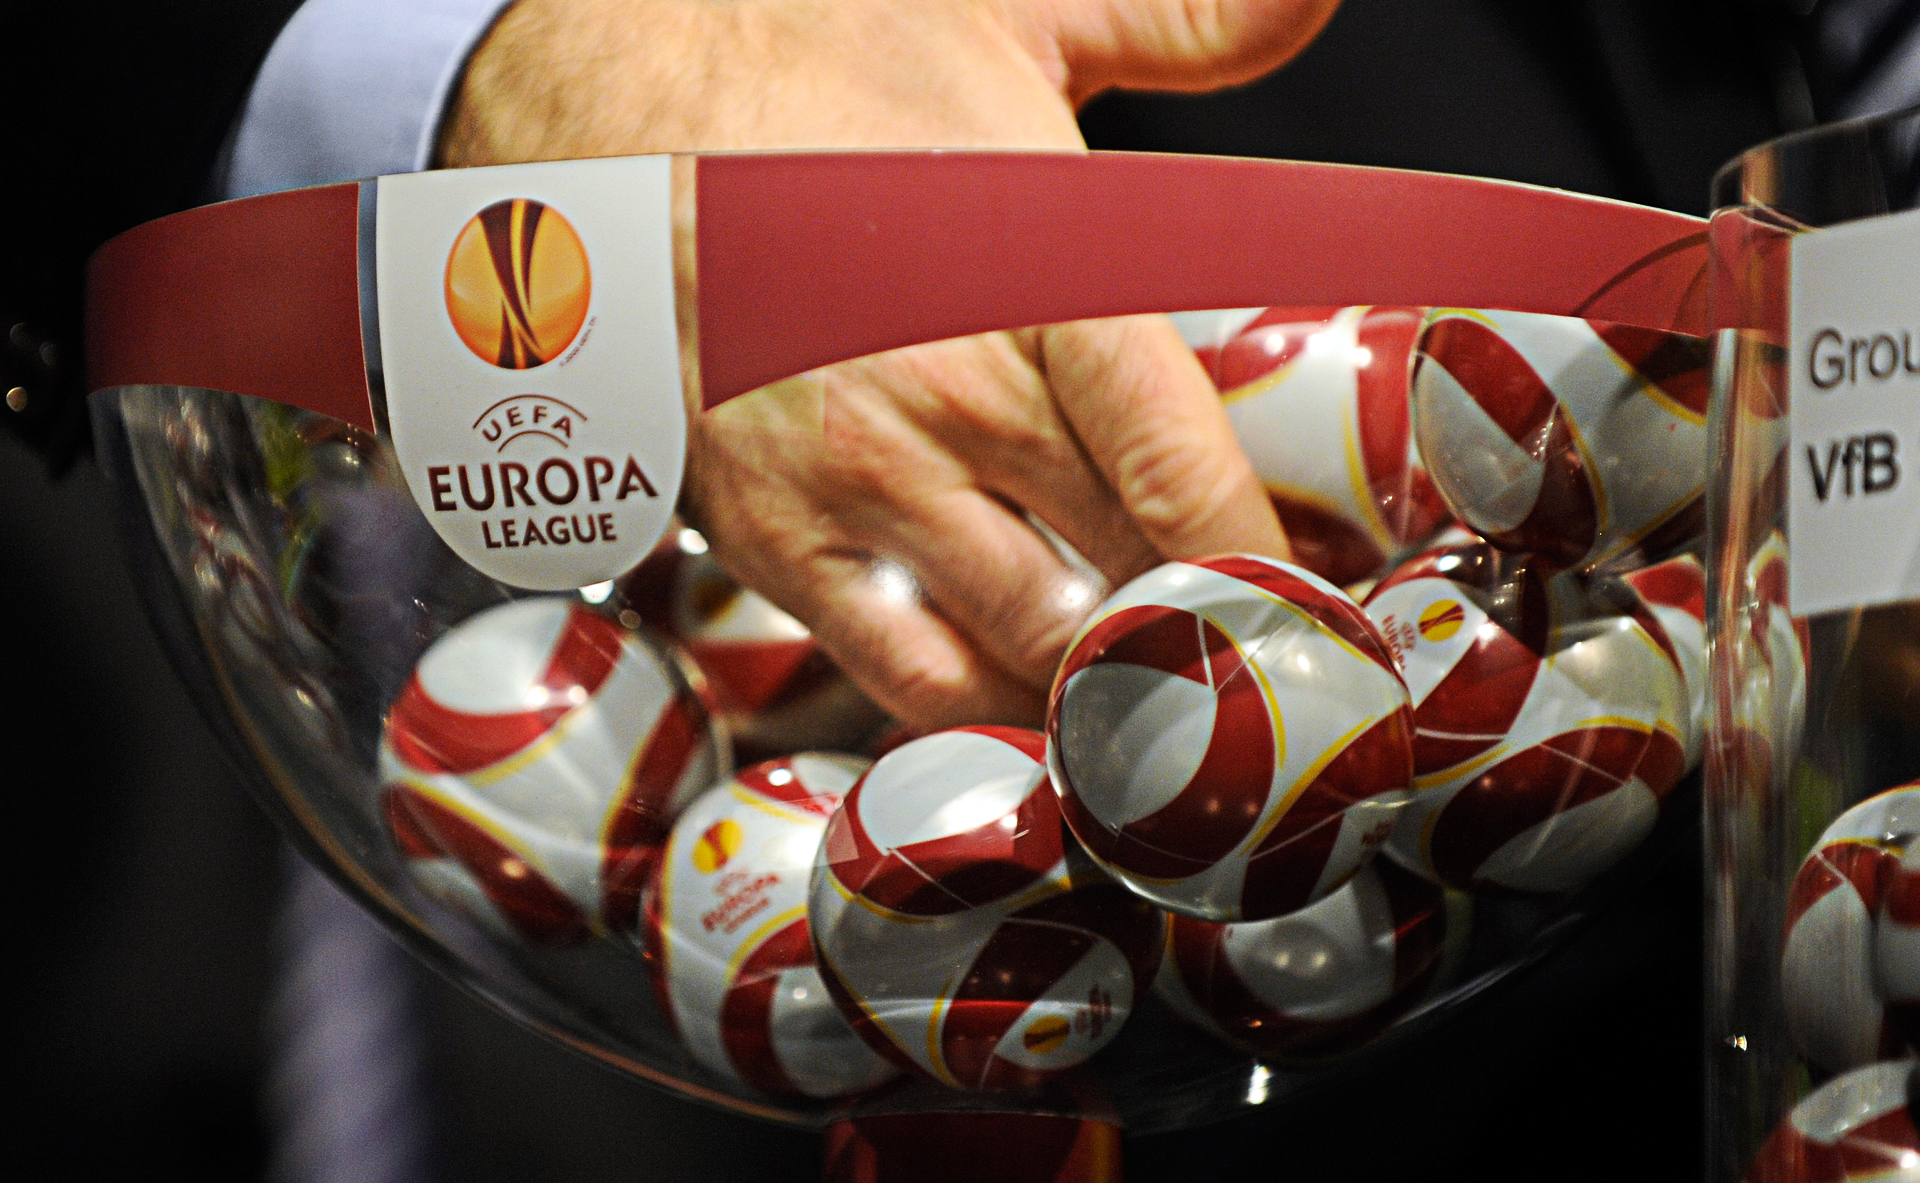 A quick guide to the Europa League Draw